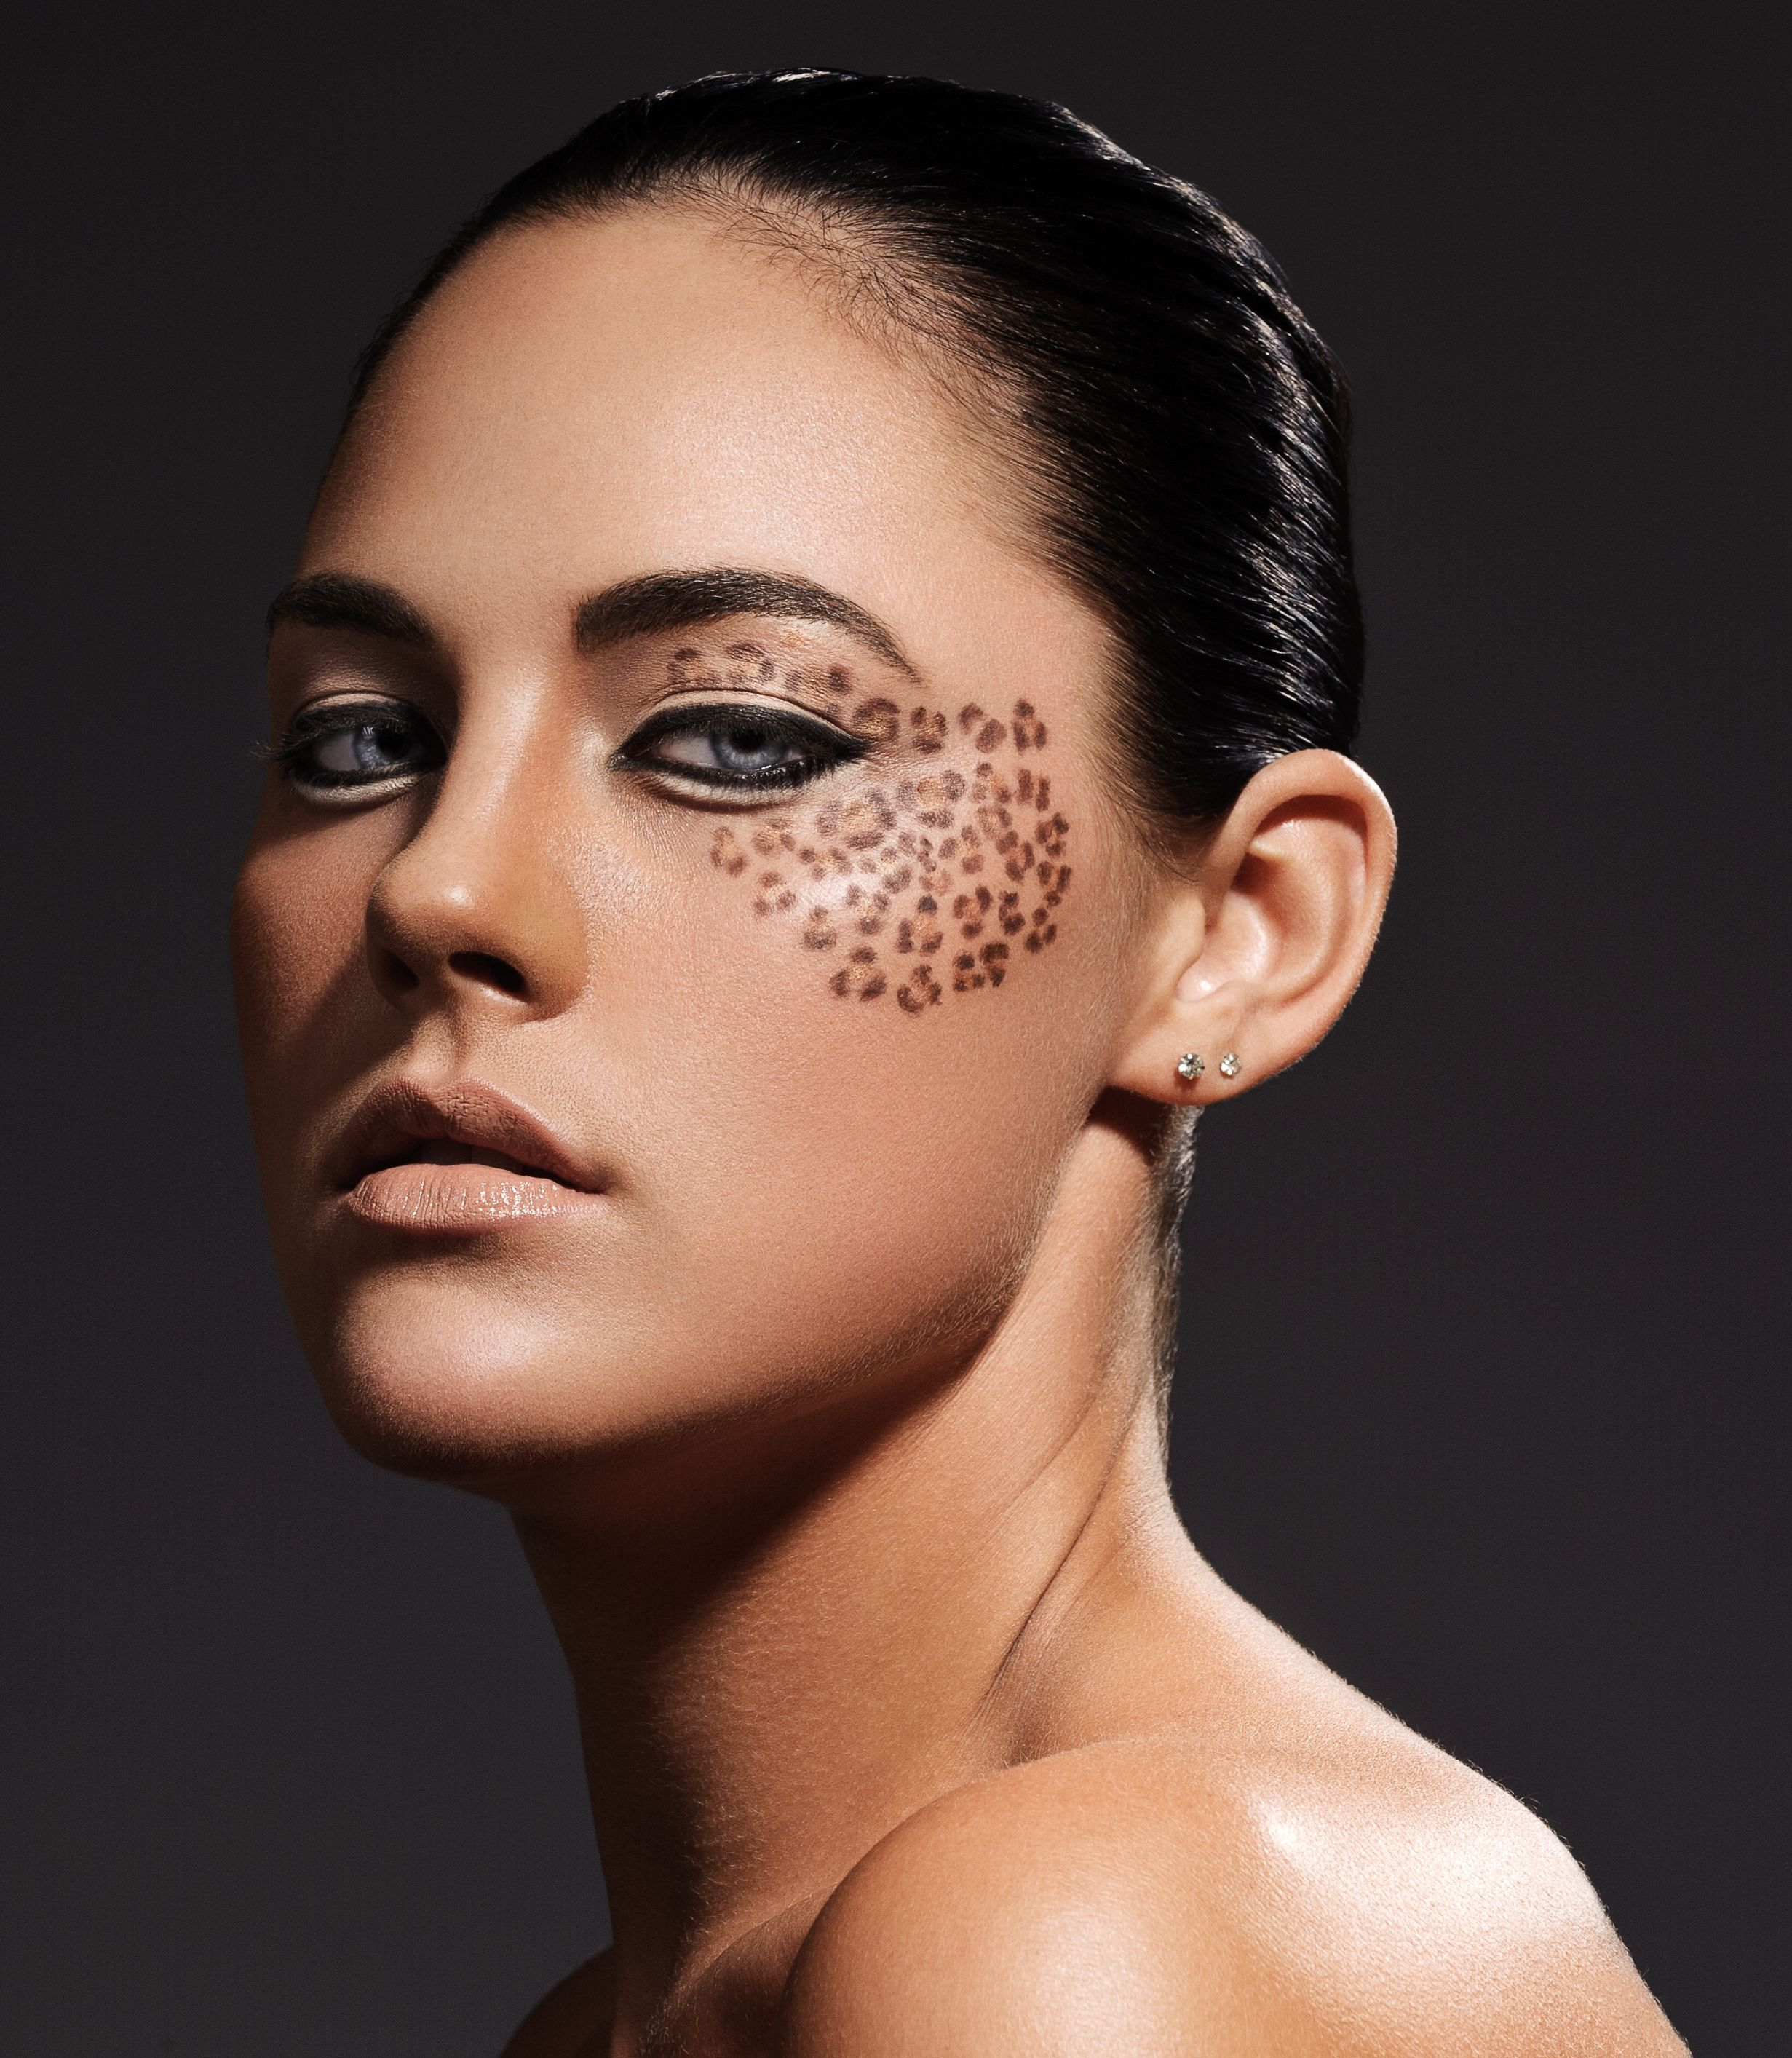 Makeup for photo shoot with Kevin Wang, leopard